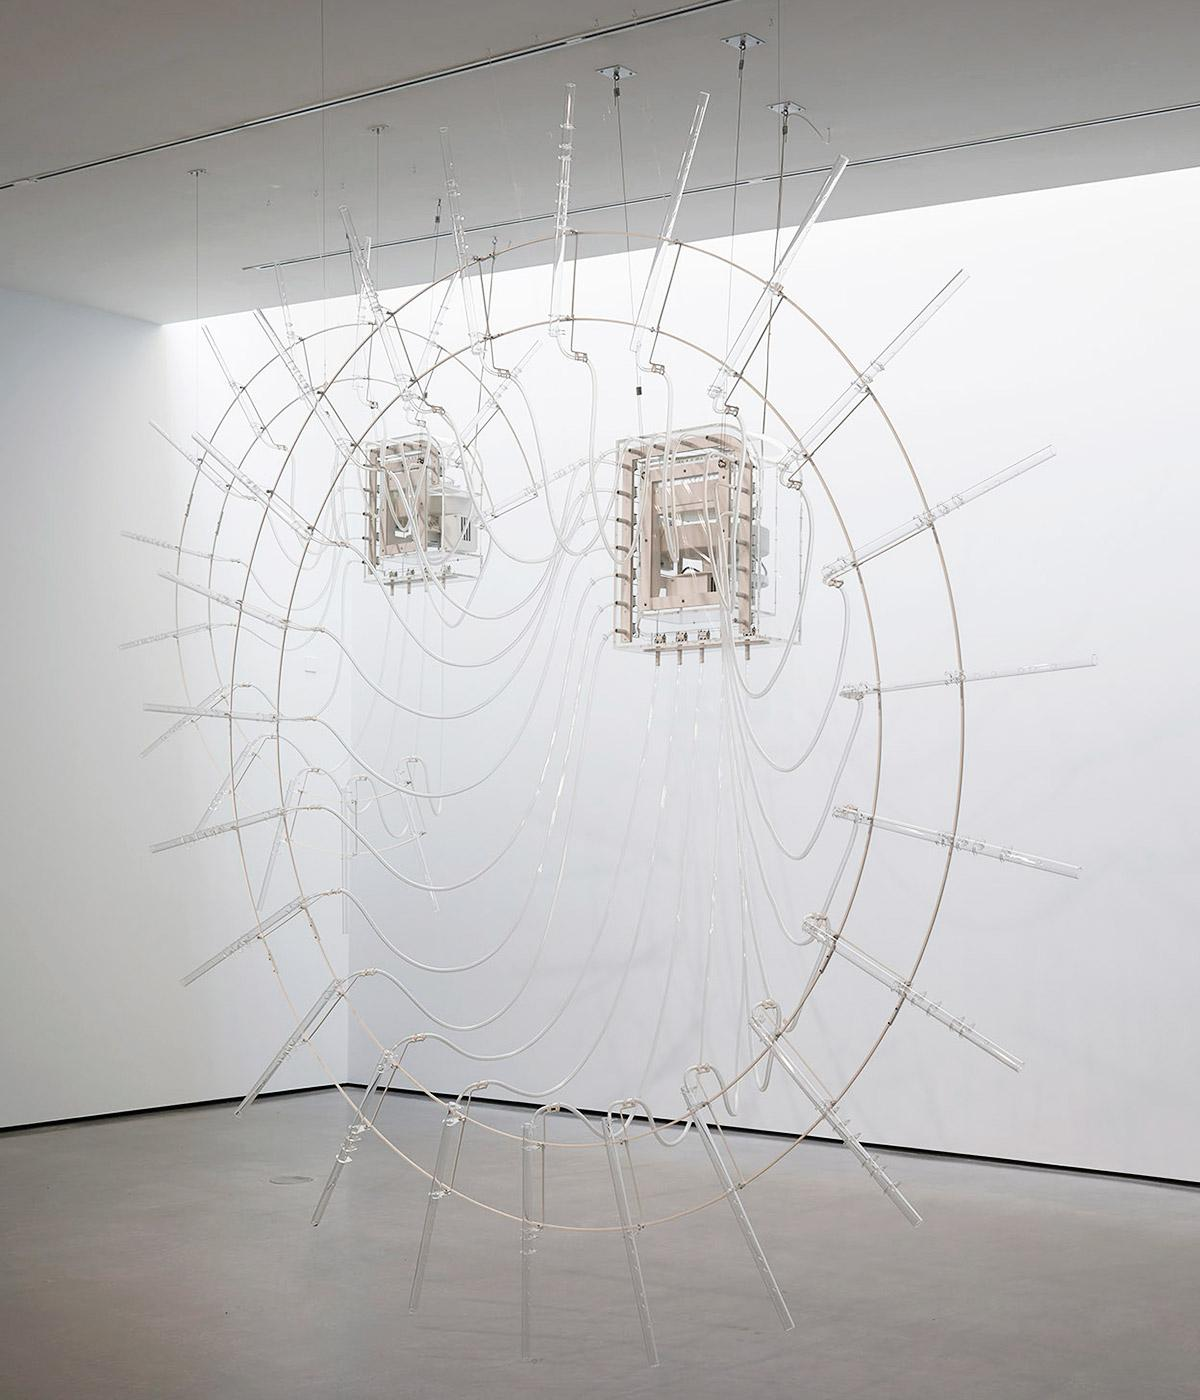 Cerith Wyn Evans' winning artwork for the 2018 Hepworth Prize for Sculpture